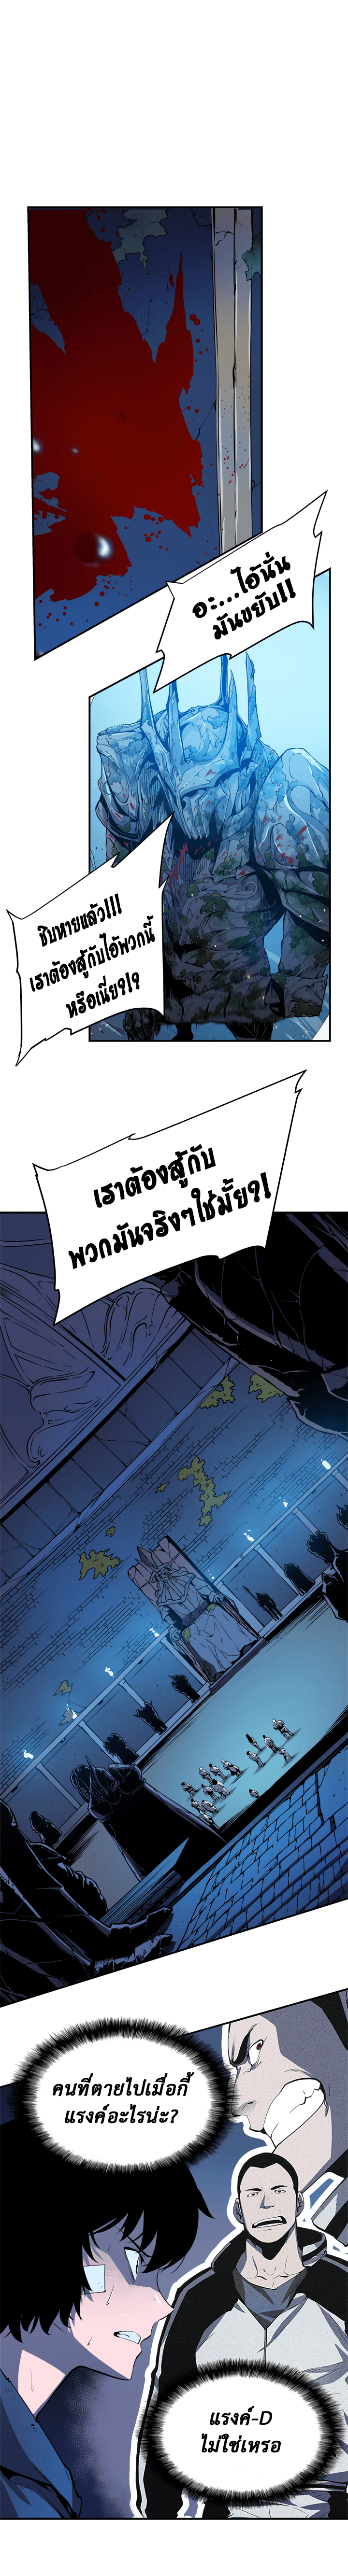 Solo Leveling - ตอนที่ 4